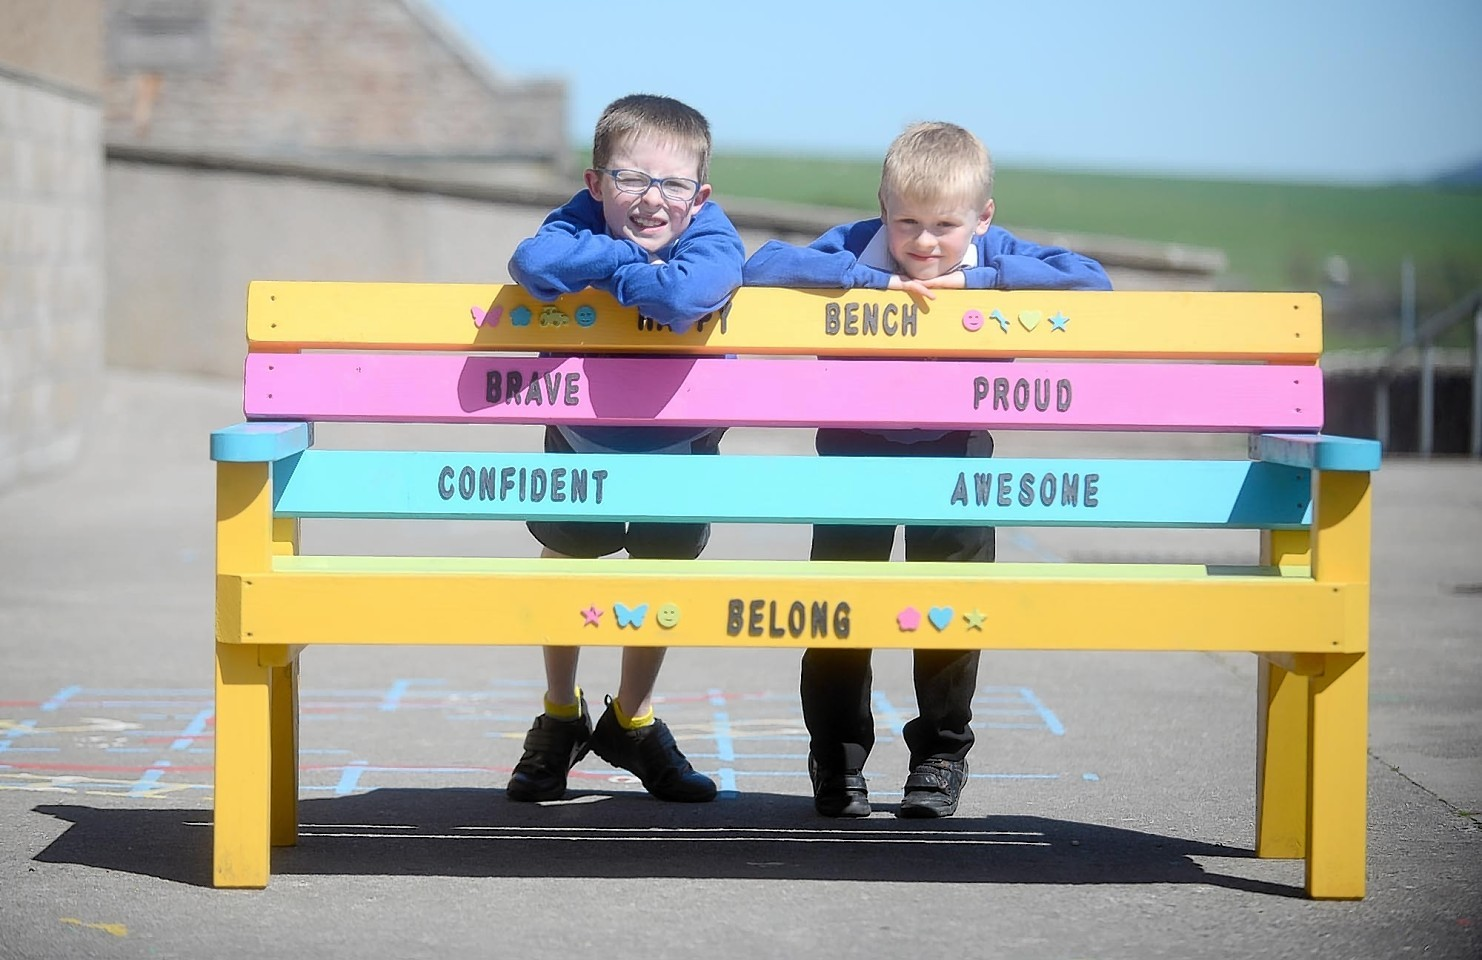 Craig Dick (left) and Max Haywood with the 'happy bench'